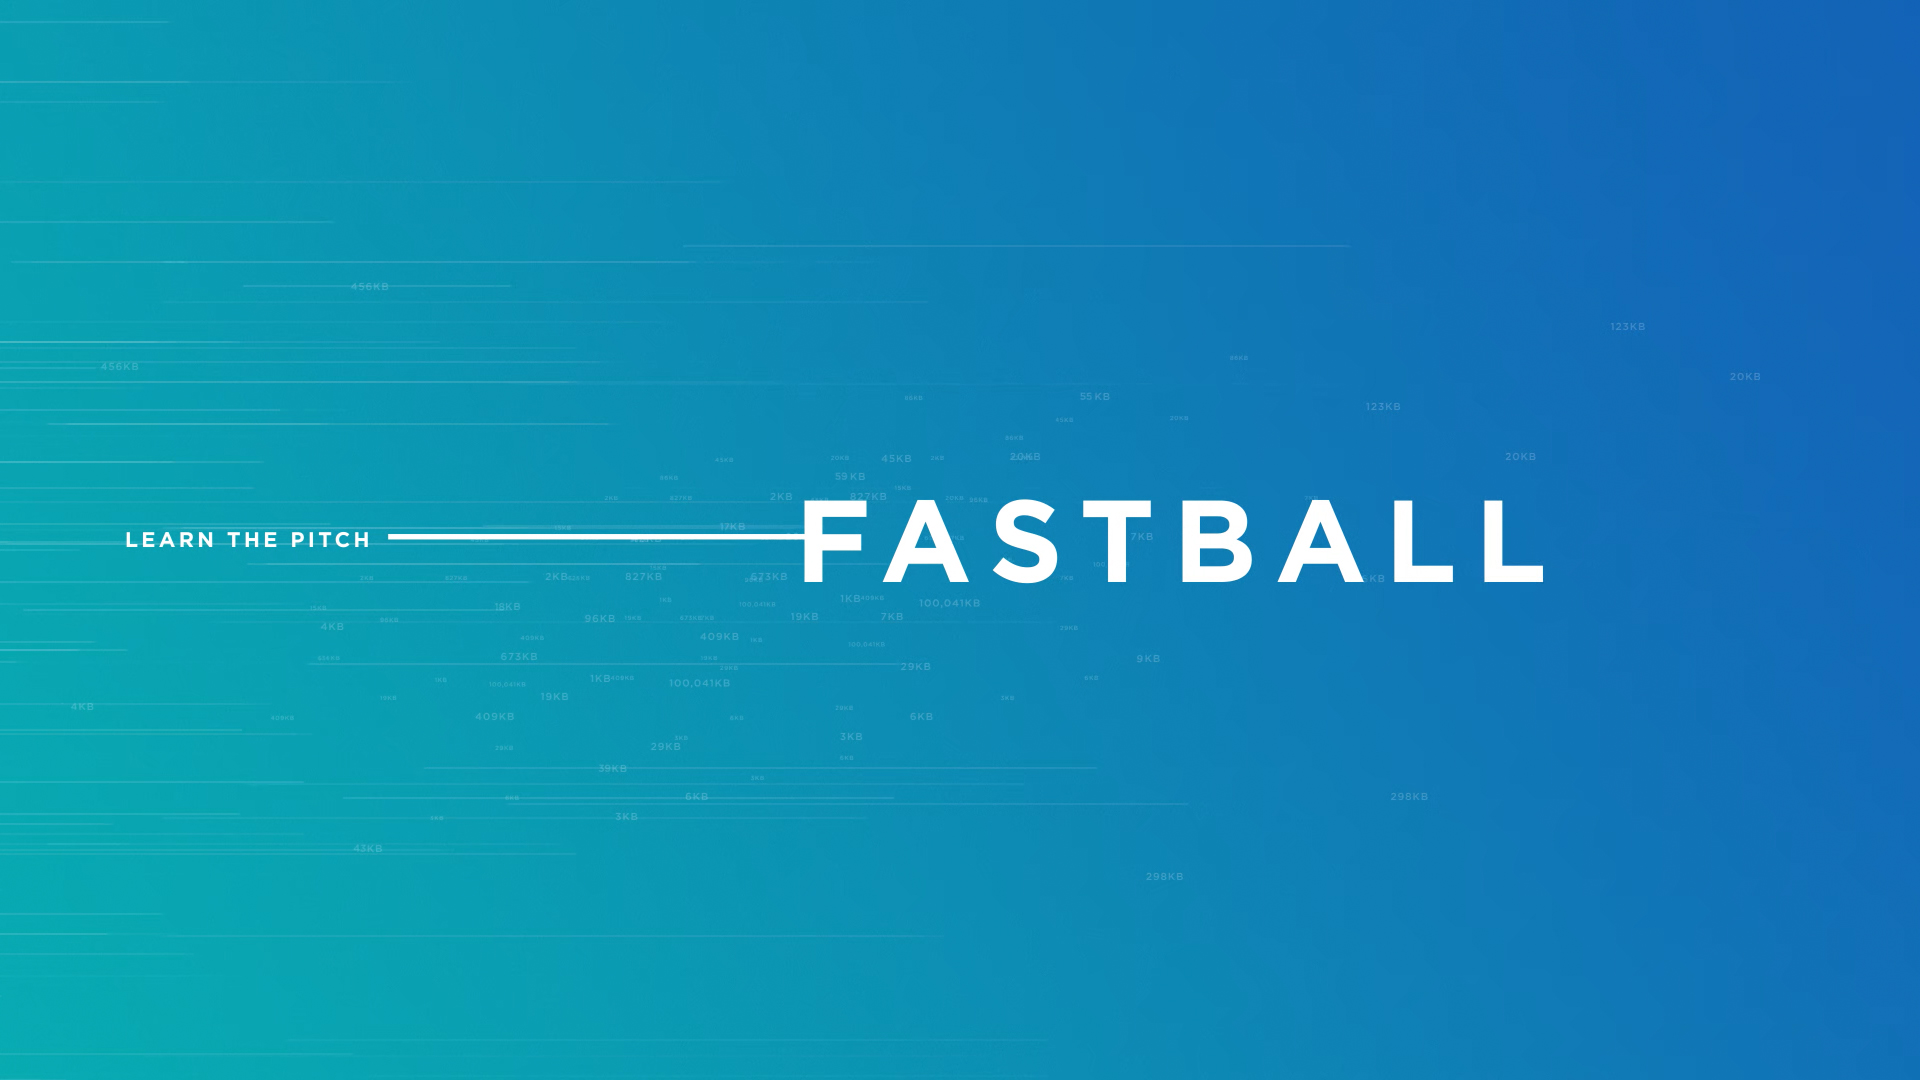 Pitches_Fastball_Edit_v01a (0-00-02-14).jpg